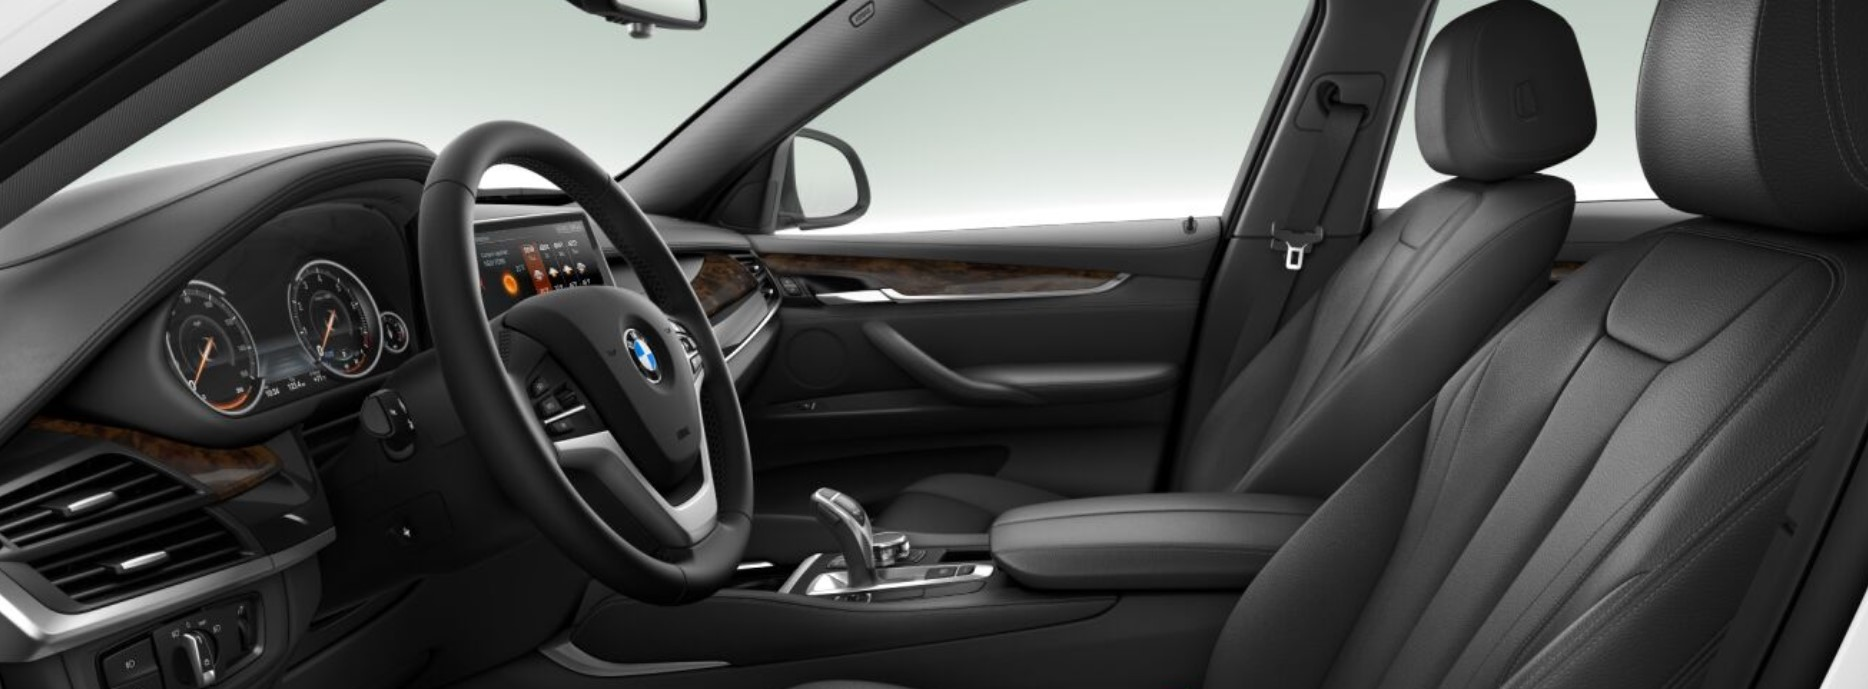 2018 BMW X6 Black Leather Interior